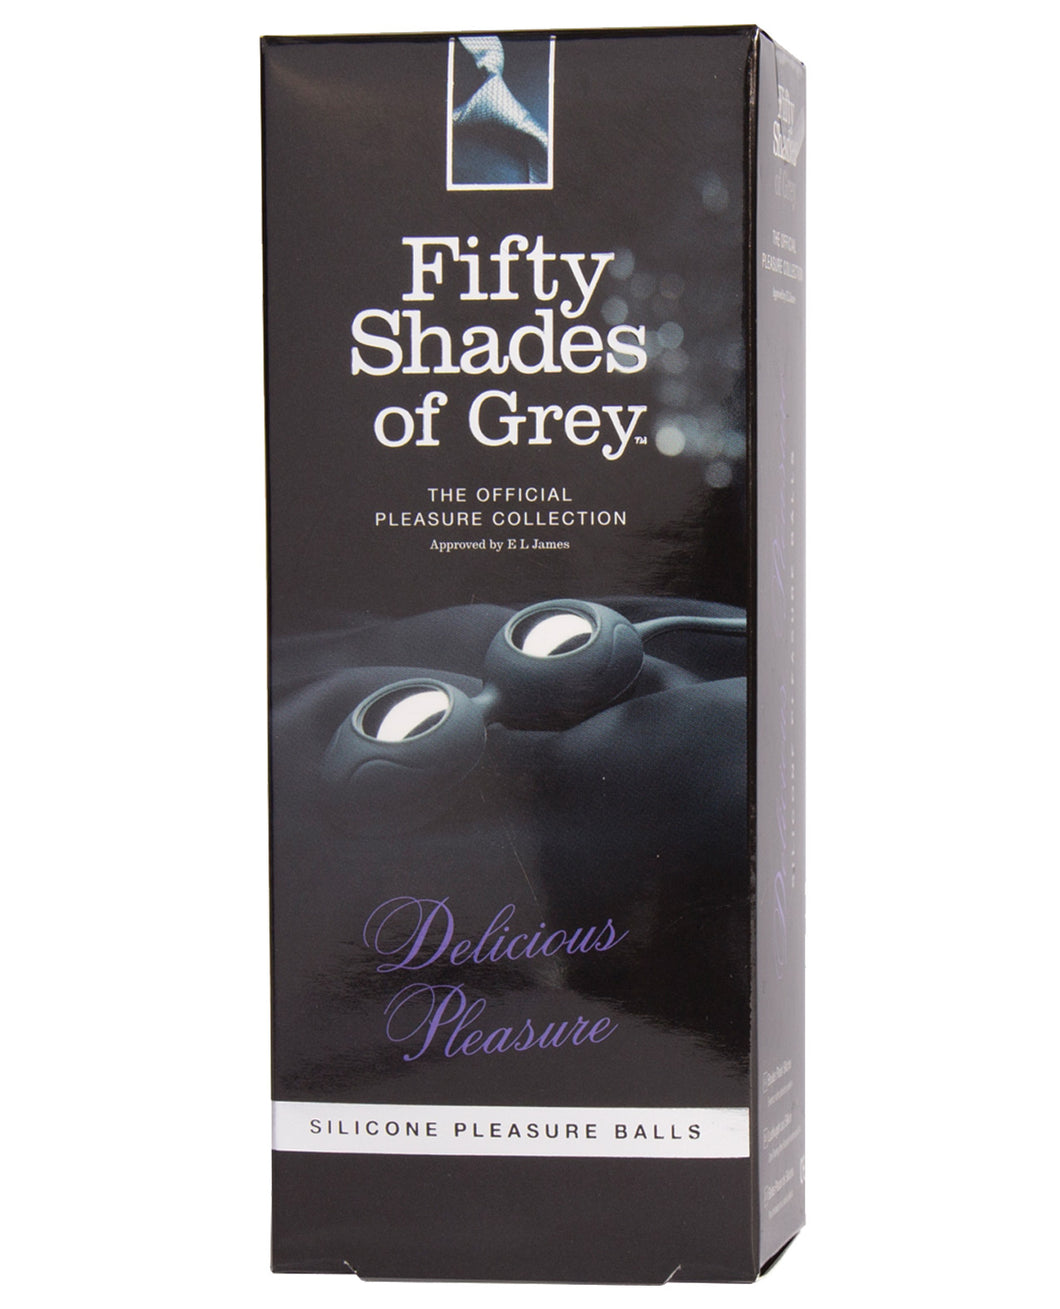 Fifty Shades of Grey Delicious Pleasure Silicone Pleasure Balls